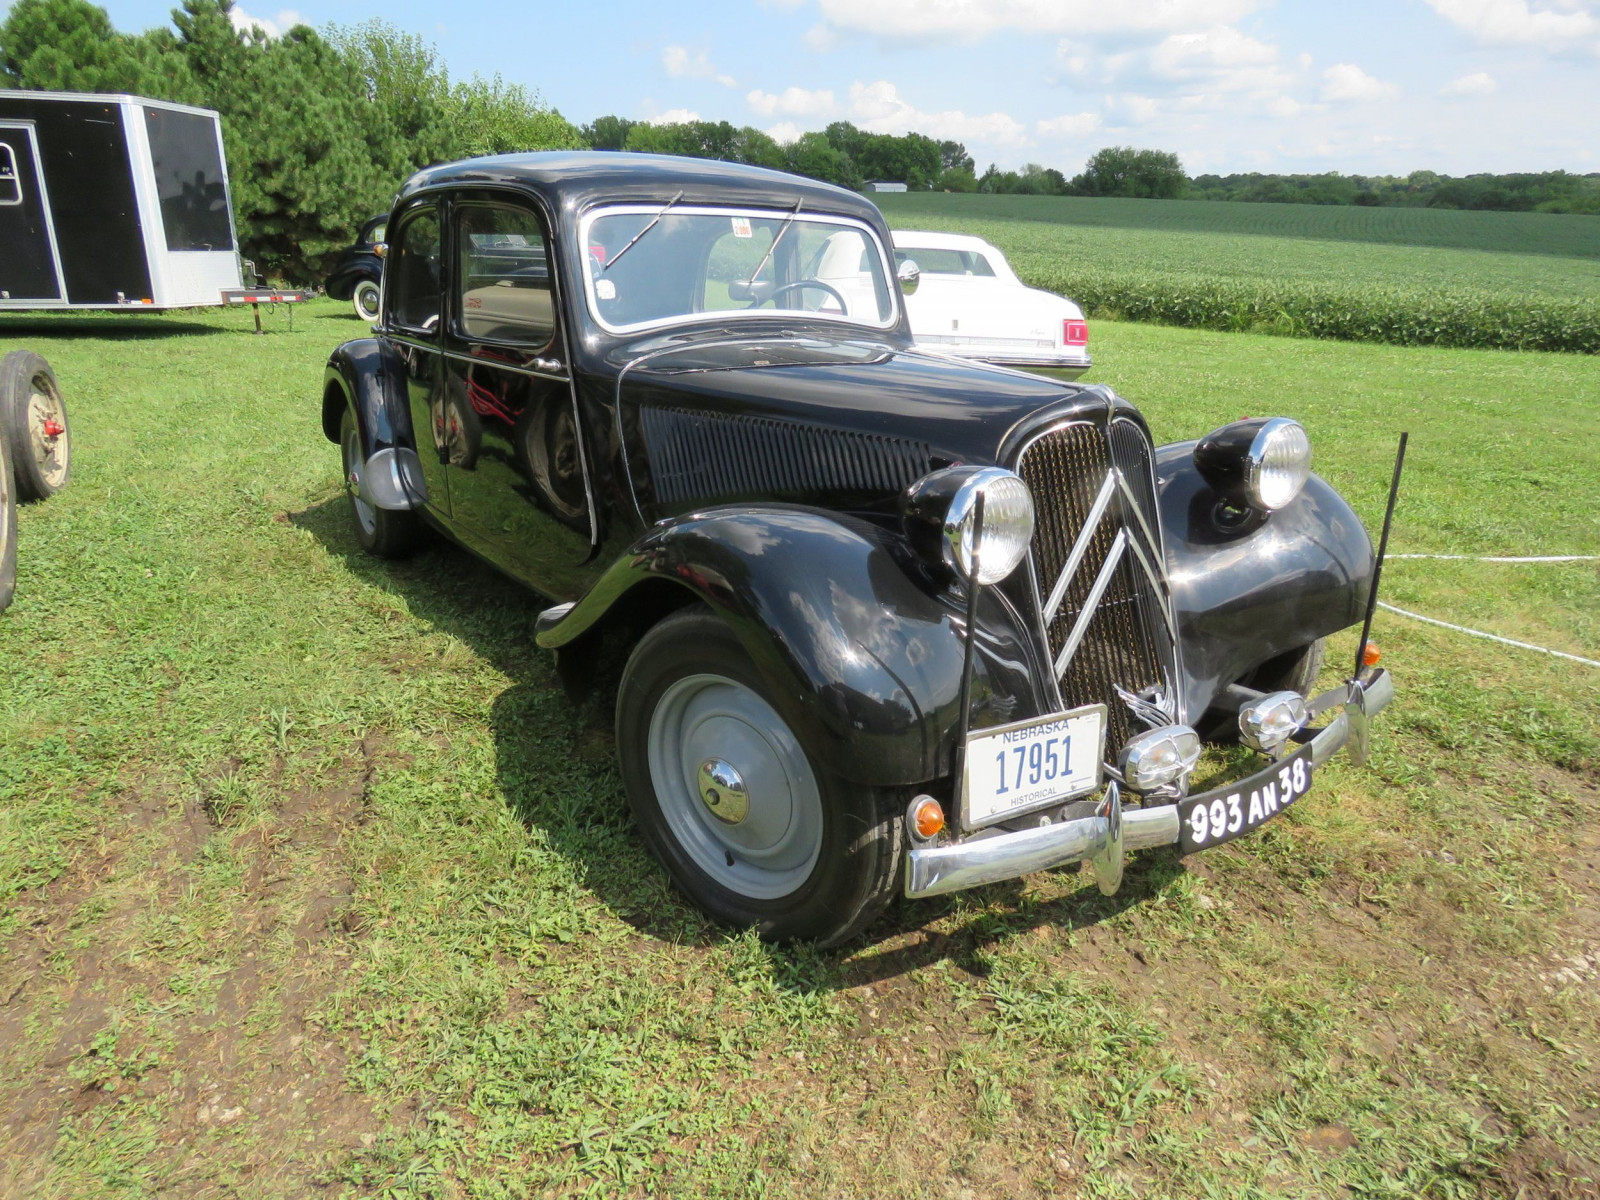 1951 Citroen Traction Avant 4dr Sedan - Image 4